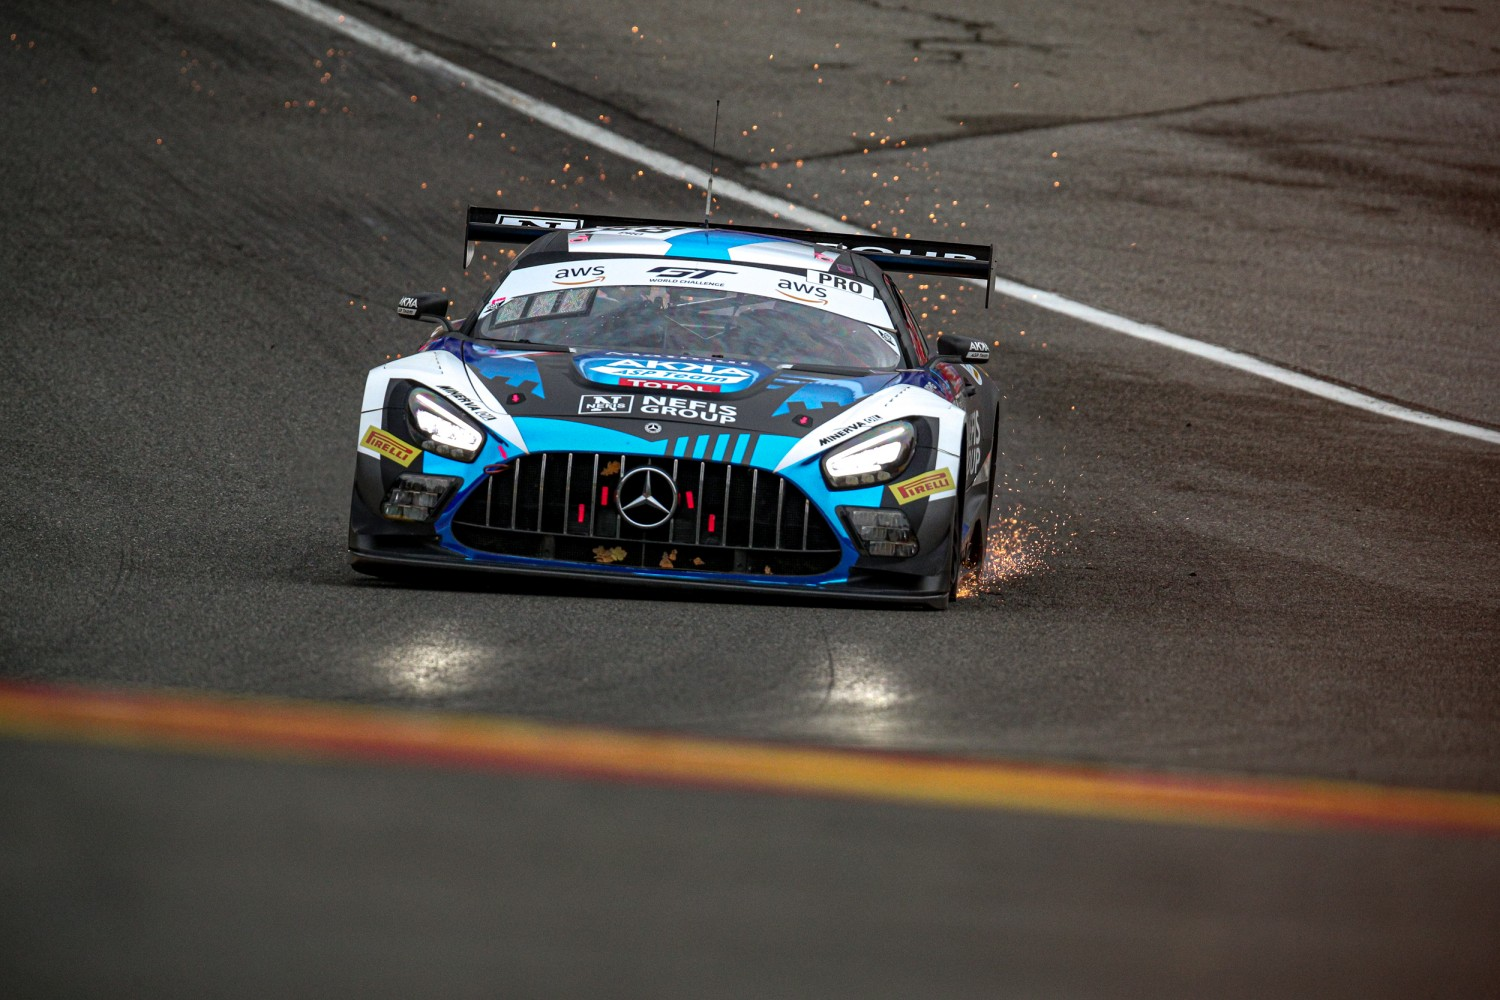 2-Hour Update: Marciello holds on to narrow lead for Mercedes-AMG Team AKKA ASP